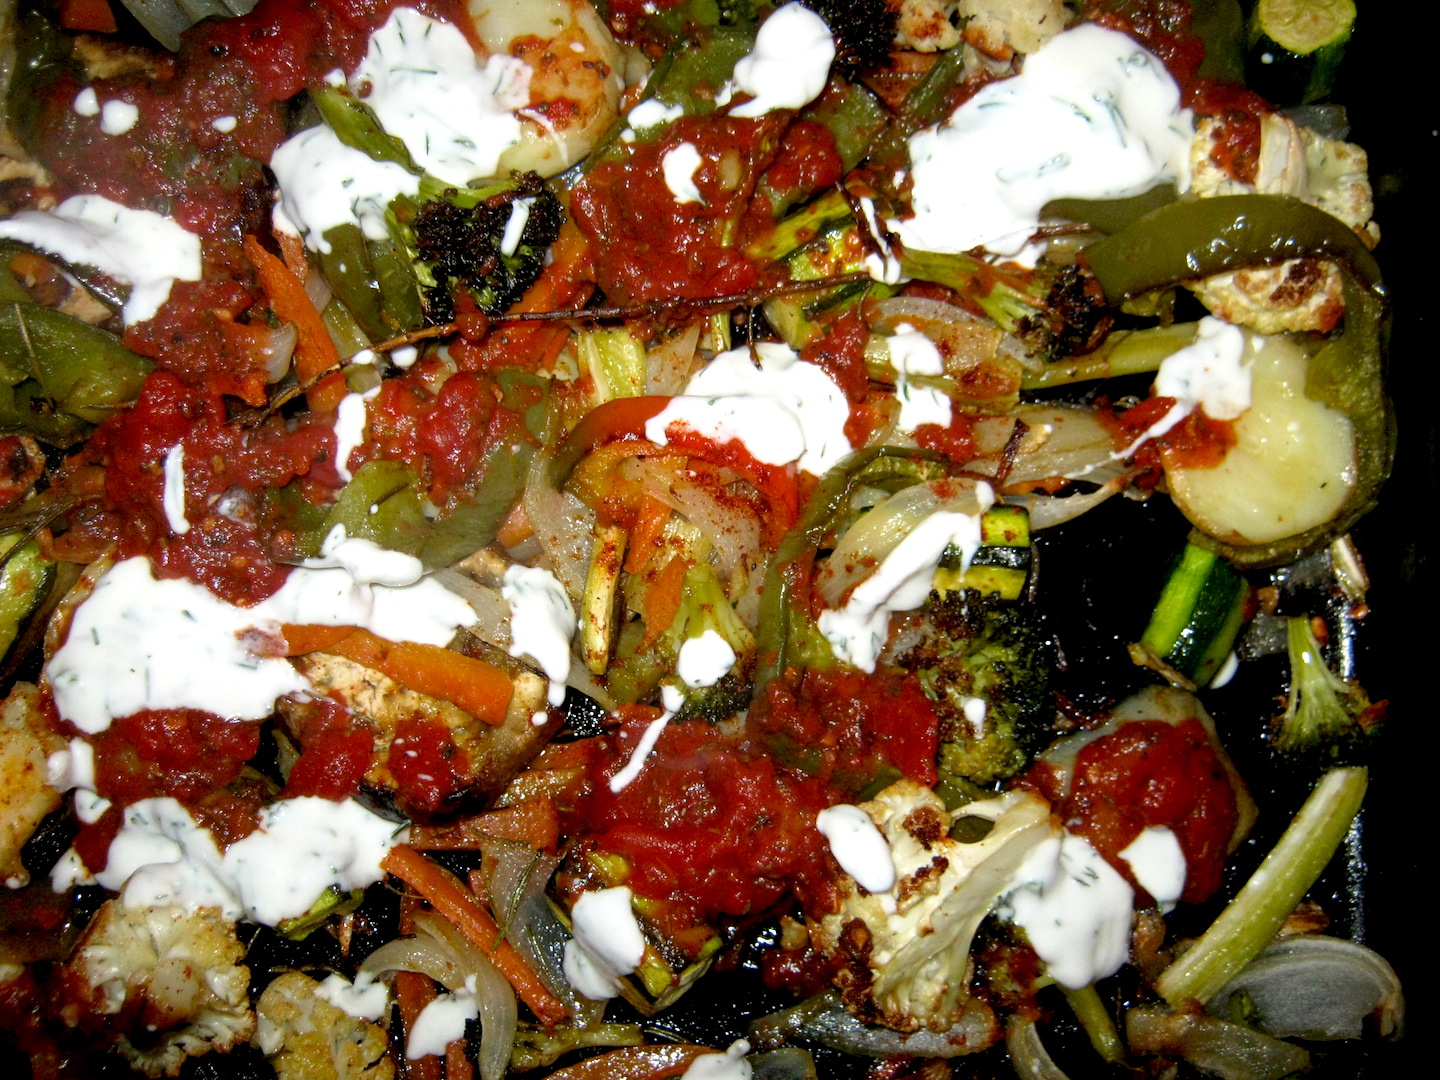 Baked Mediterranean Vegetables with Yoghurt dip and cooked tomato sauce